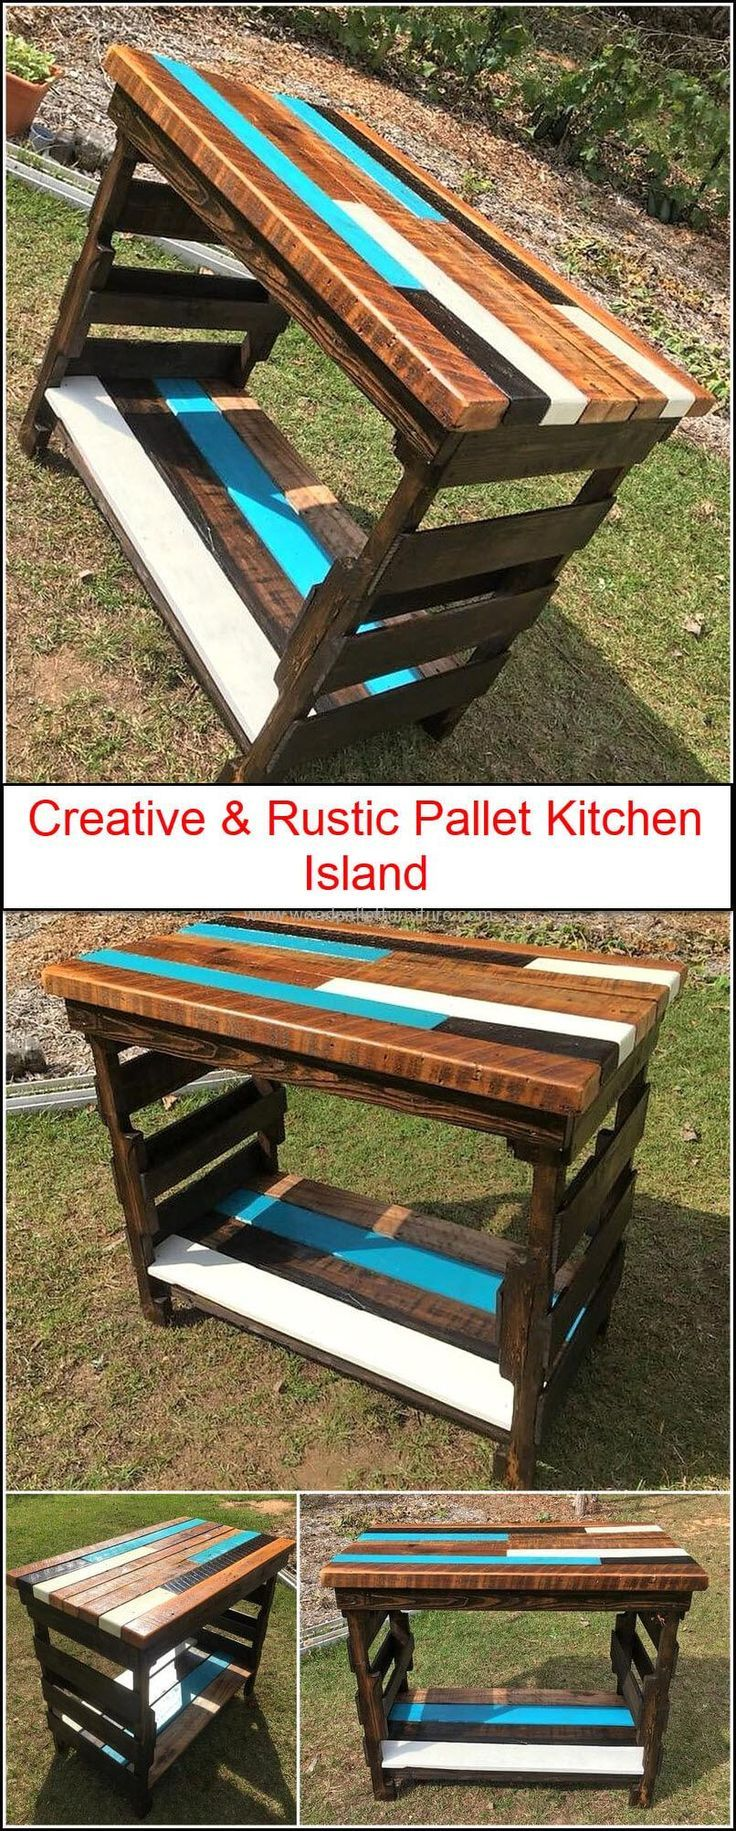 Wood pallets furniture is the right choice to decorate your kitchen beautifully. Recycle wood pallets and craft stylish furniture with it to add amazing collection of furniture to your kitchen. We are going to provide you Creative and Rustic Pallet Kitchen Island, that will help you in your kitchen tasks and at the same time it looks attractive and wonderful.